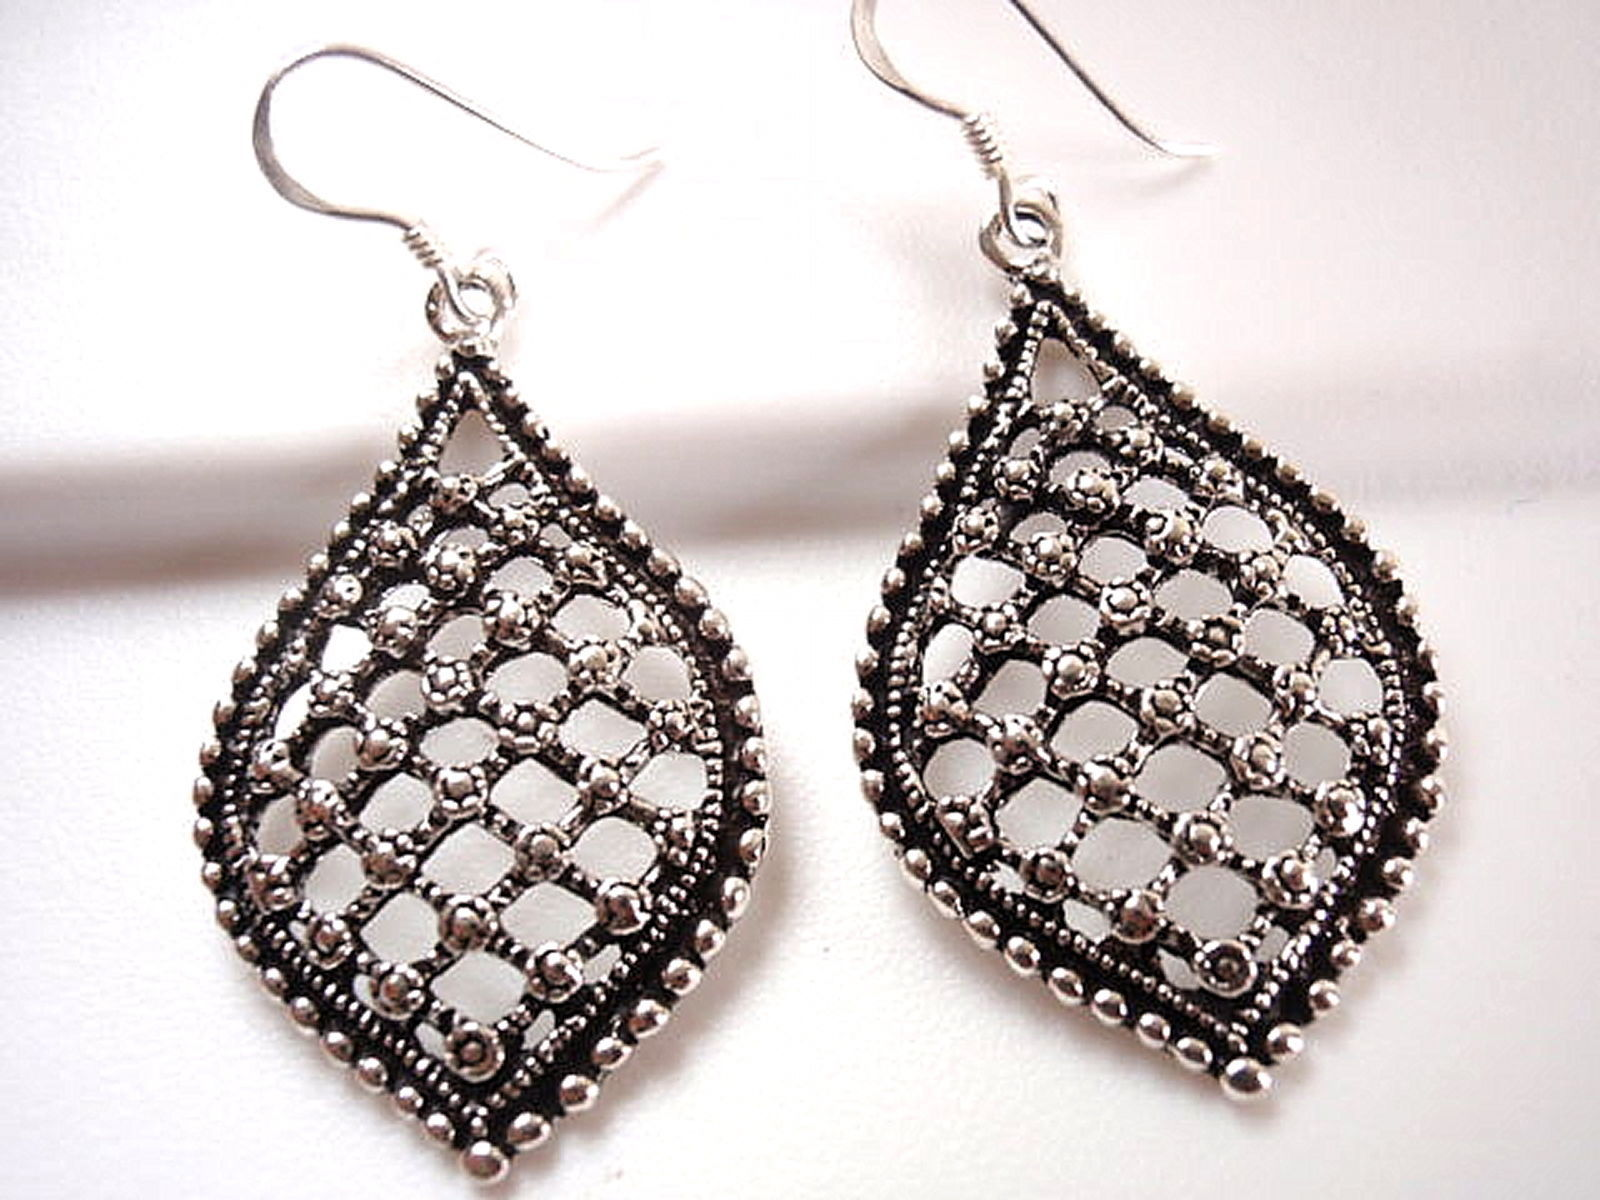 Primary image for Sparkling Patterned Dangle Earrings with Silver Beads Perimeter 925 Sterling